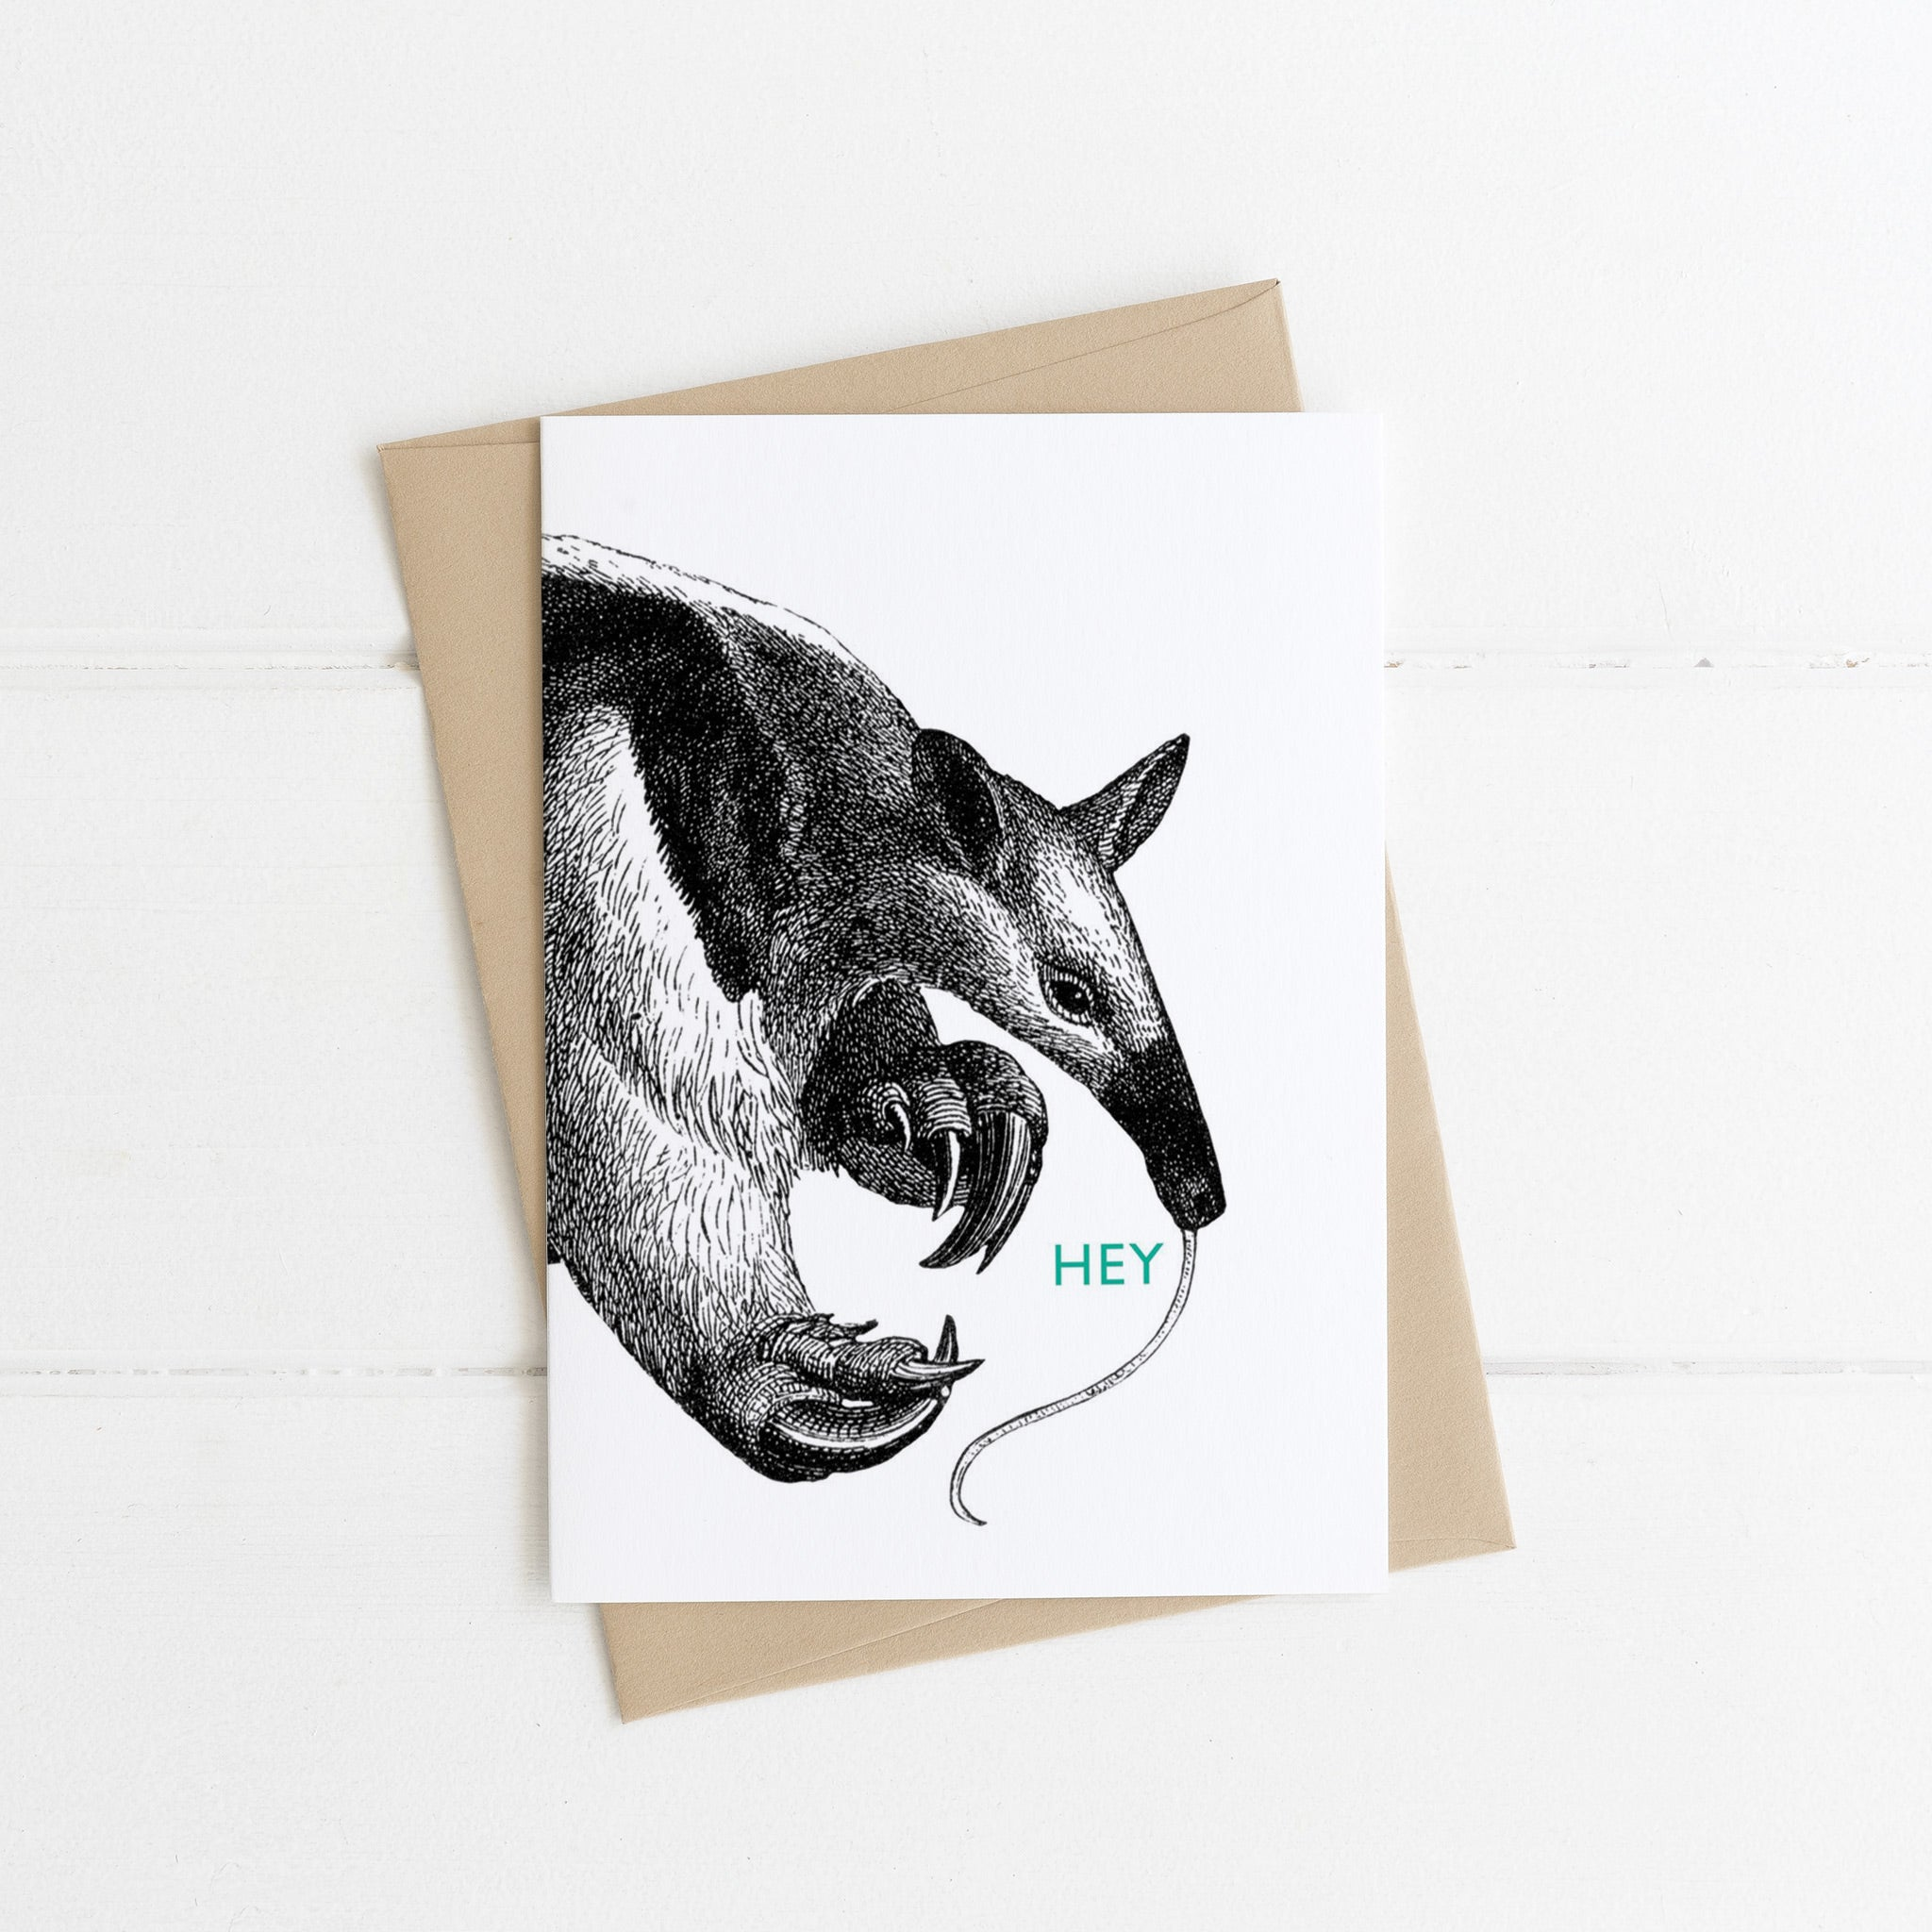 Hey Anteater Card